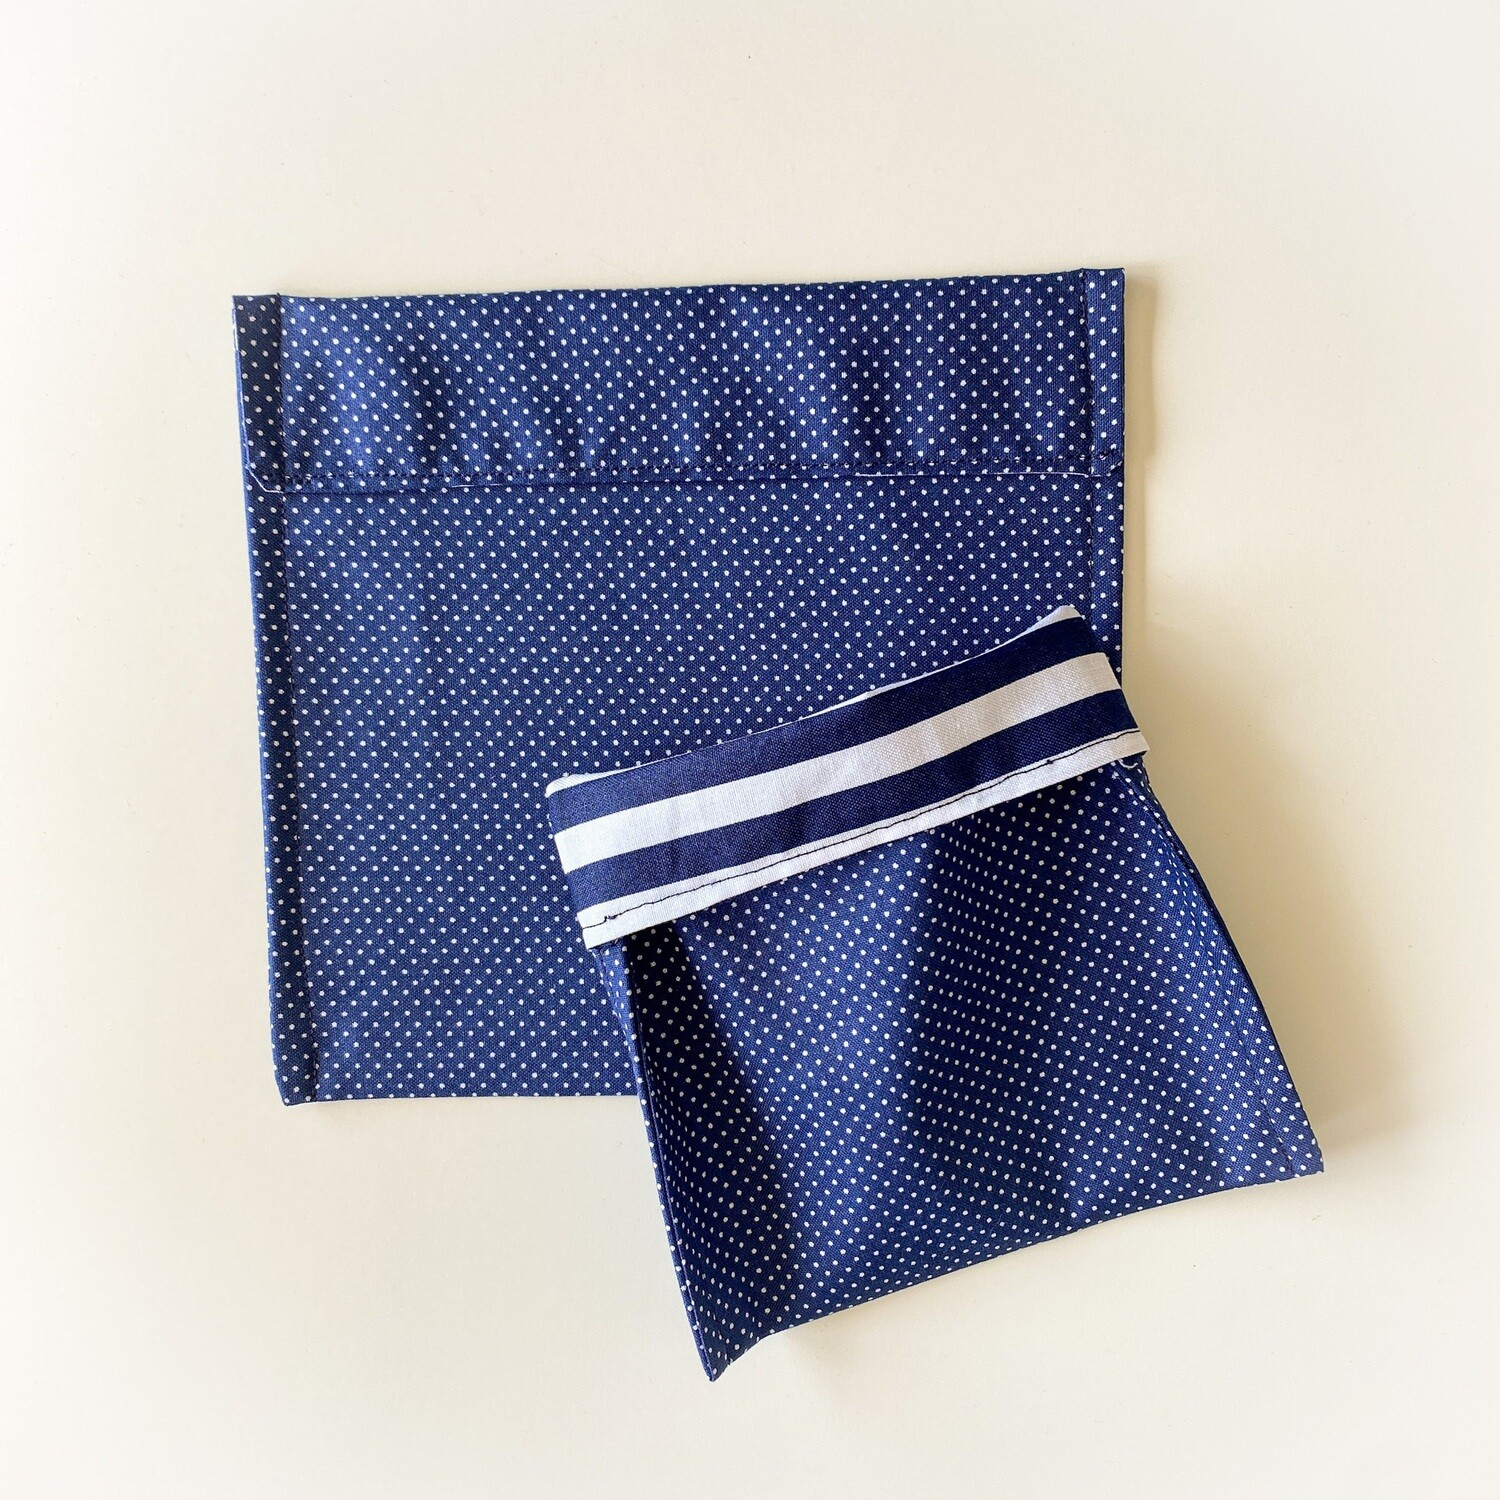 Blue Polka Dot Washable Reusable Snack Bag, Storage Pouch with Easy Fold-Over Top ECO-FRIENDLY